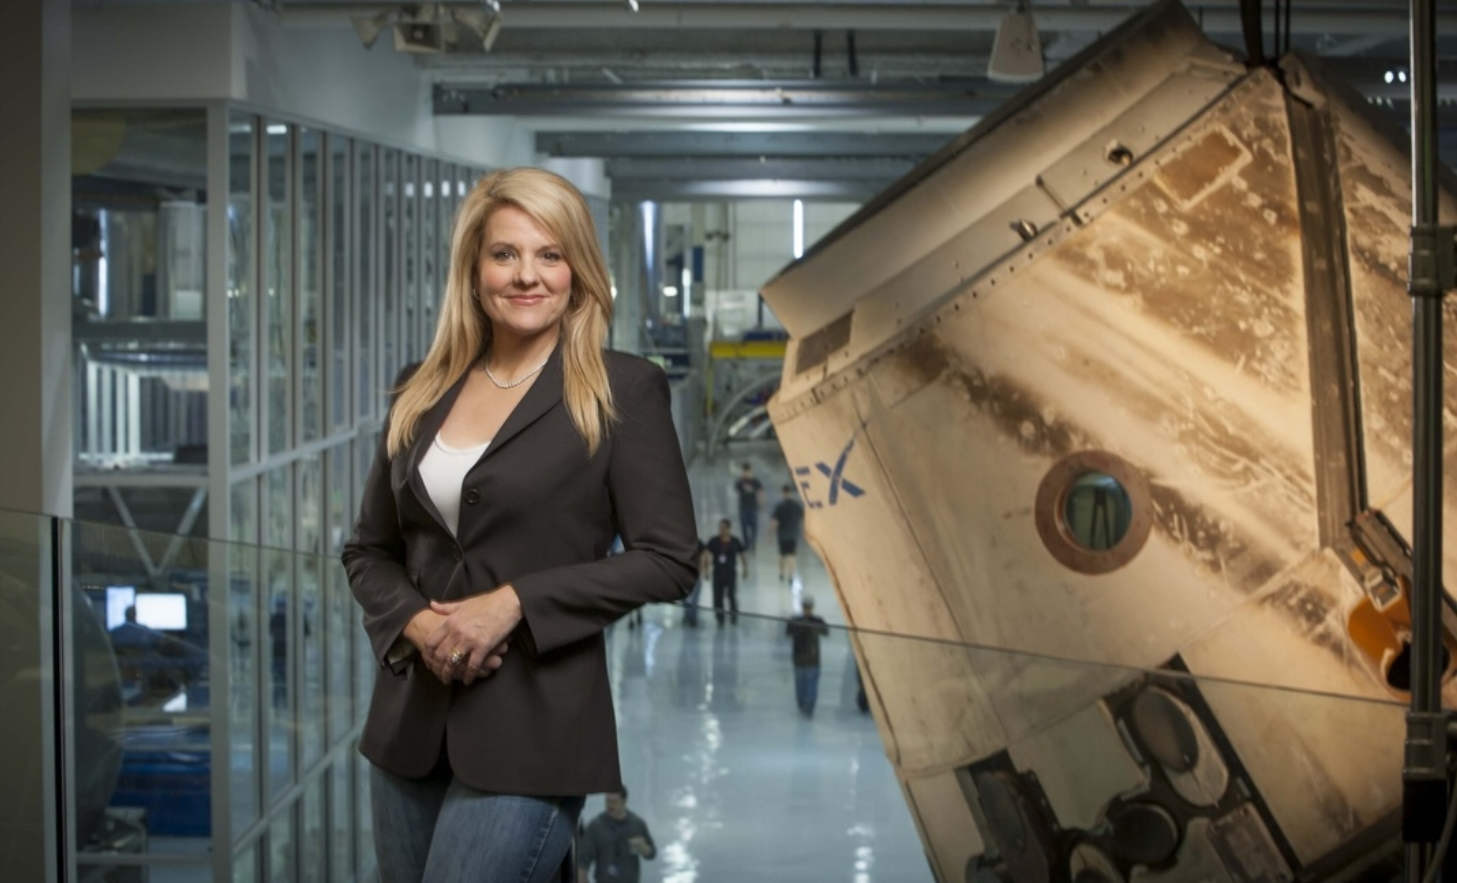 Gwynne Shotwell  - Space Exploration  Shotwell is President and COO at SpaceX (Space Exploration Technologies Corporation)